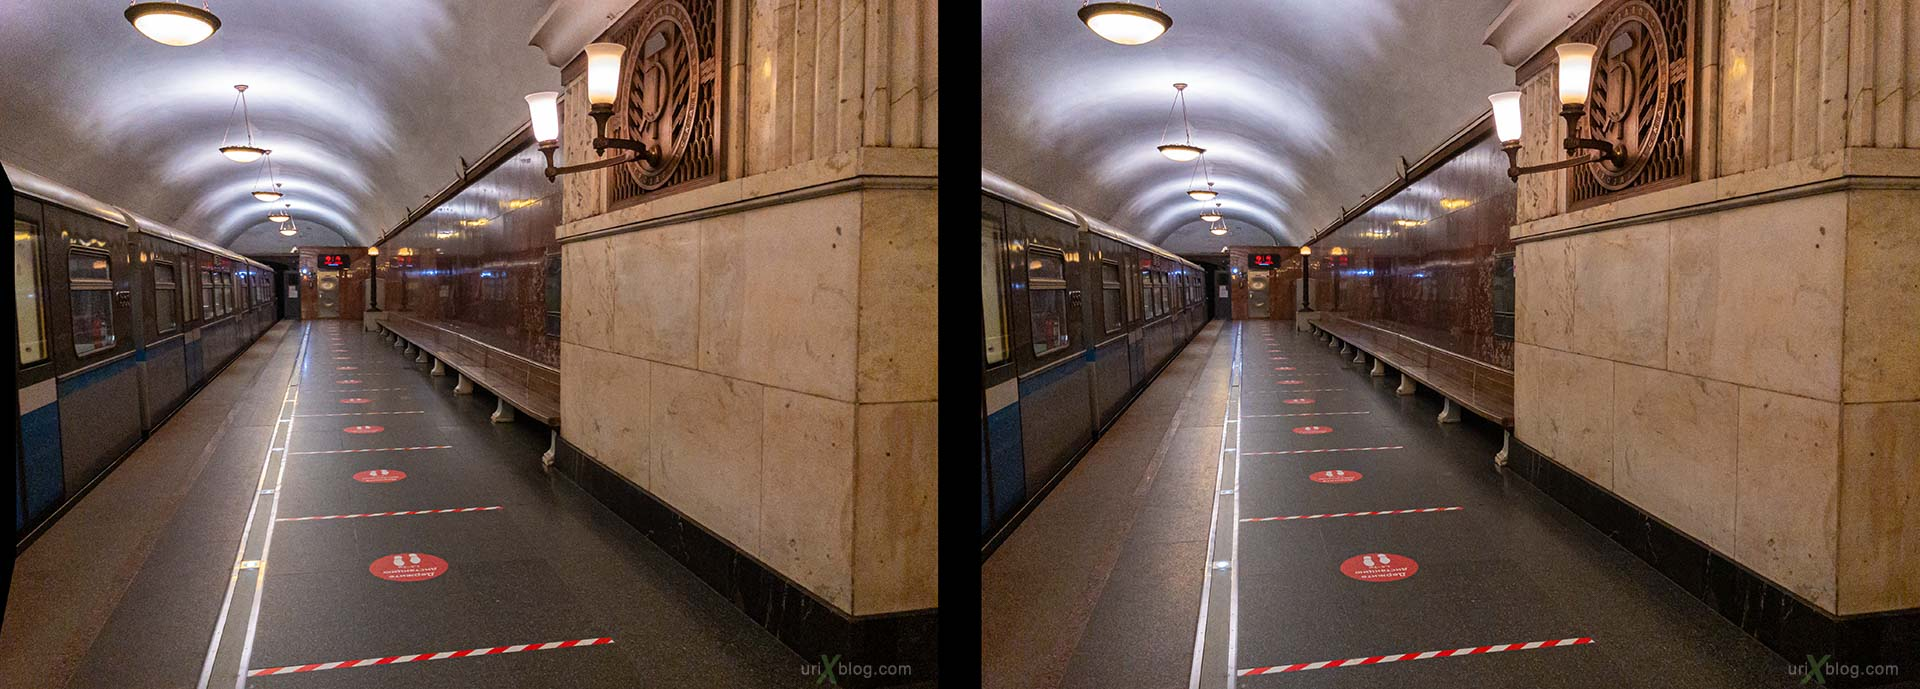 Electrozavodskaya, station, metro, quarantine, coronavirus, isolation, distance, Moscow, Russia, 3D, stereo pair, cross-eyed, crossview, cross view stereo pair, stereoscopic